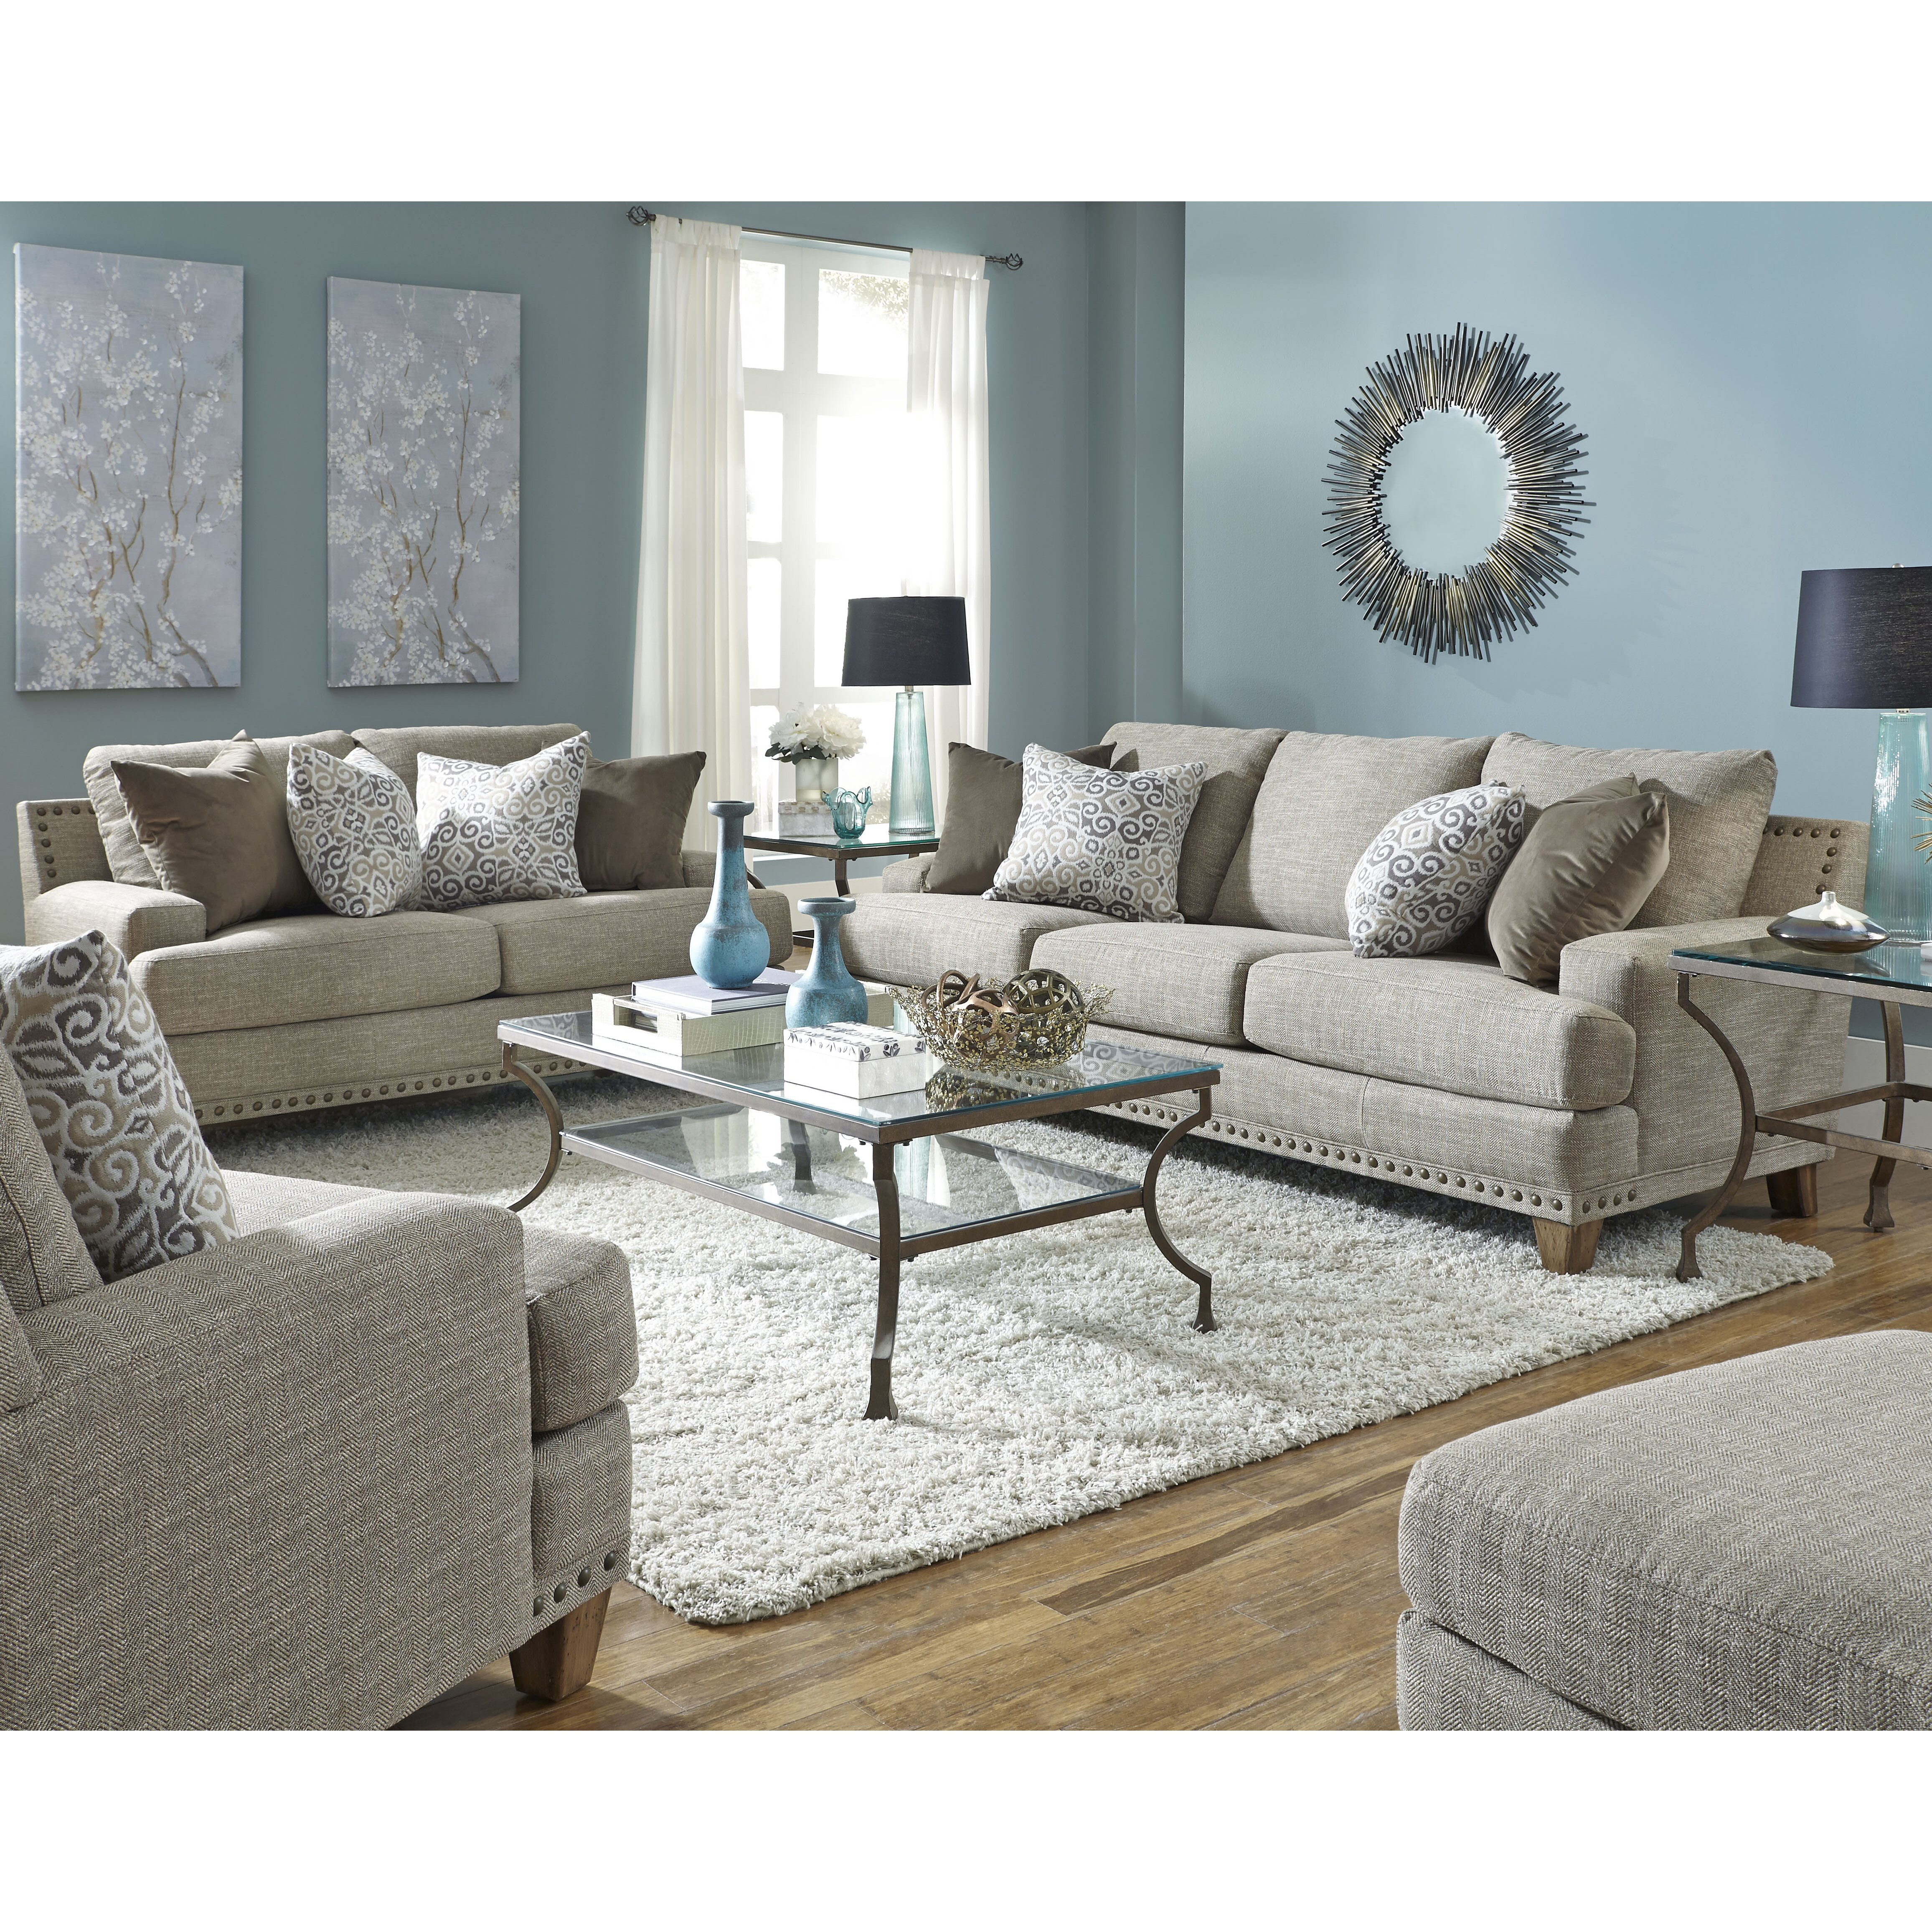 Quick view crownfield living room collection